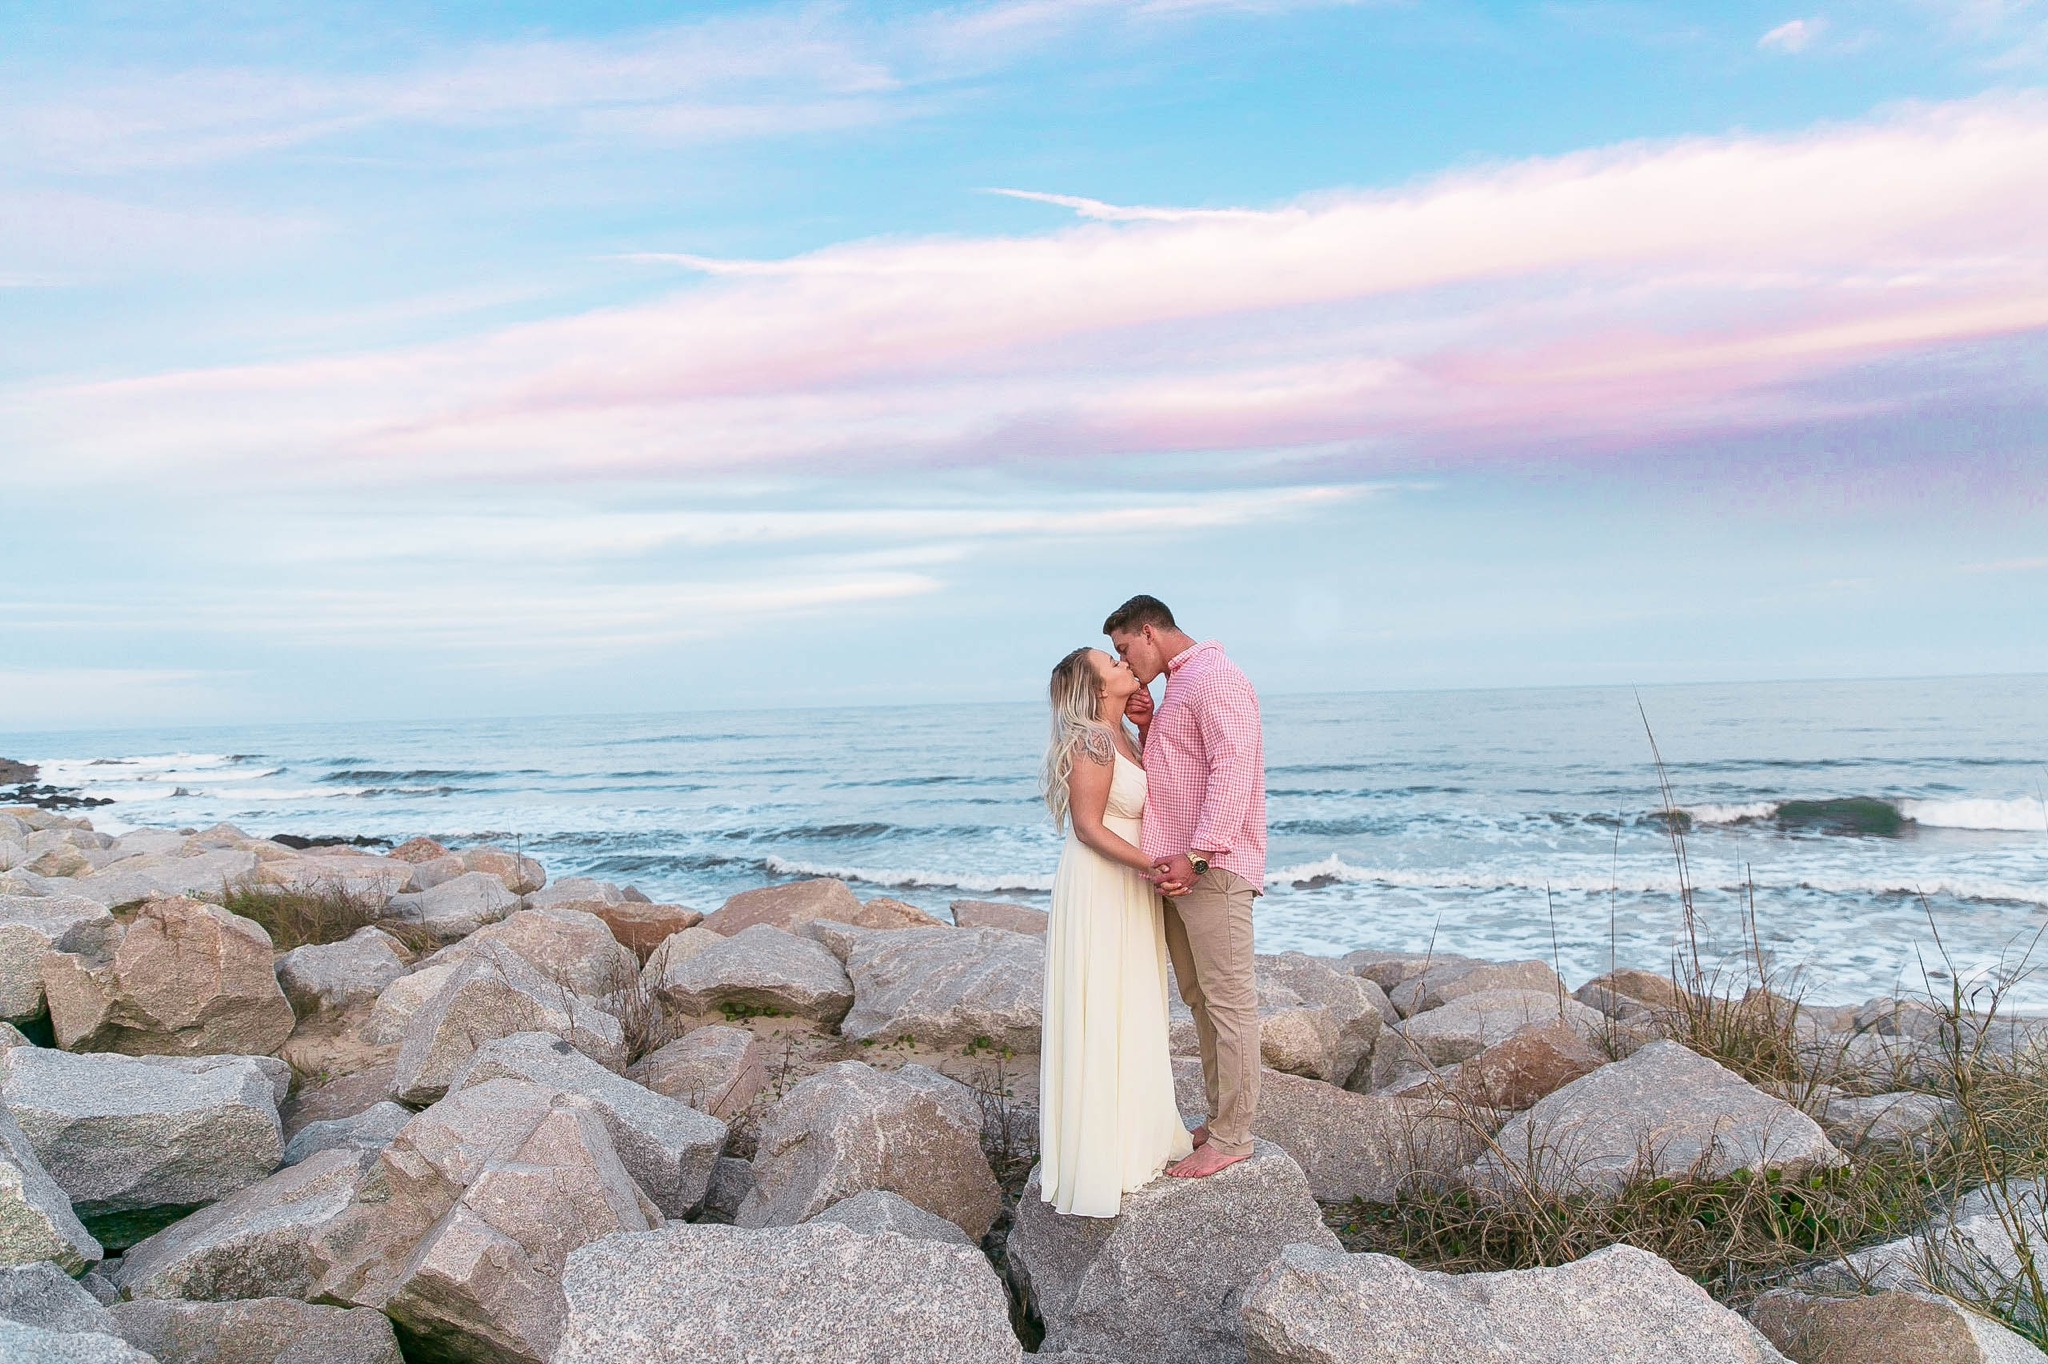 Engagement Photography Session at the beach on top of rocks with a cotton candy sky in the background - couple is looking at each other - girl is wearing a white flowy maxi dress from lulus - Honolulu Oahu Hawaii Wedding Photographer - Johanna Dye